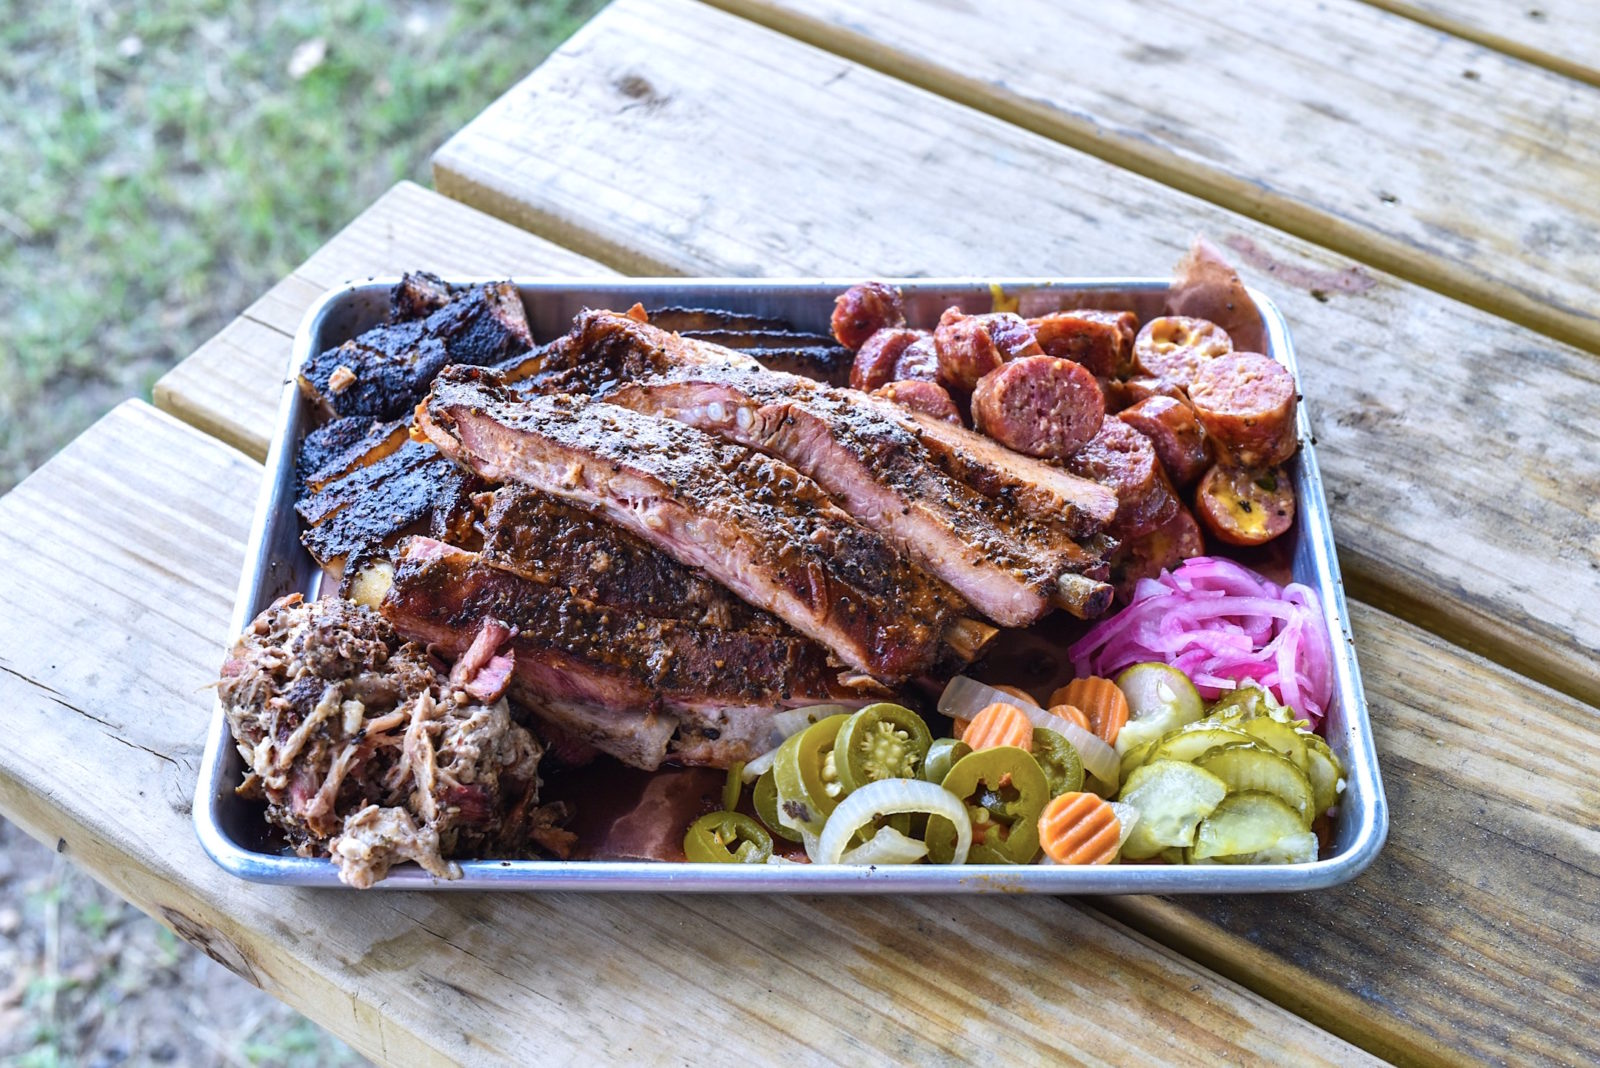 Brenham's Truth BBQ opens first Houston location this weekend